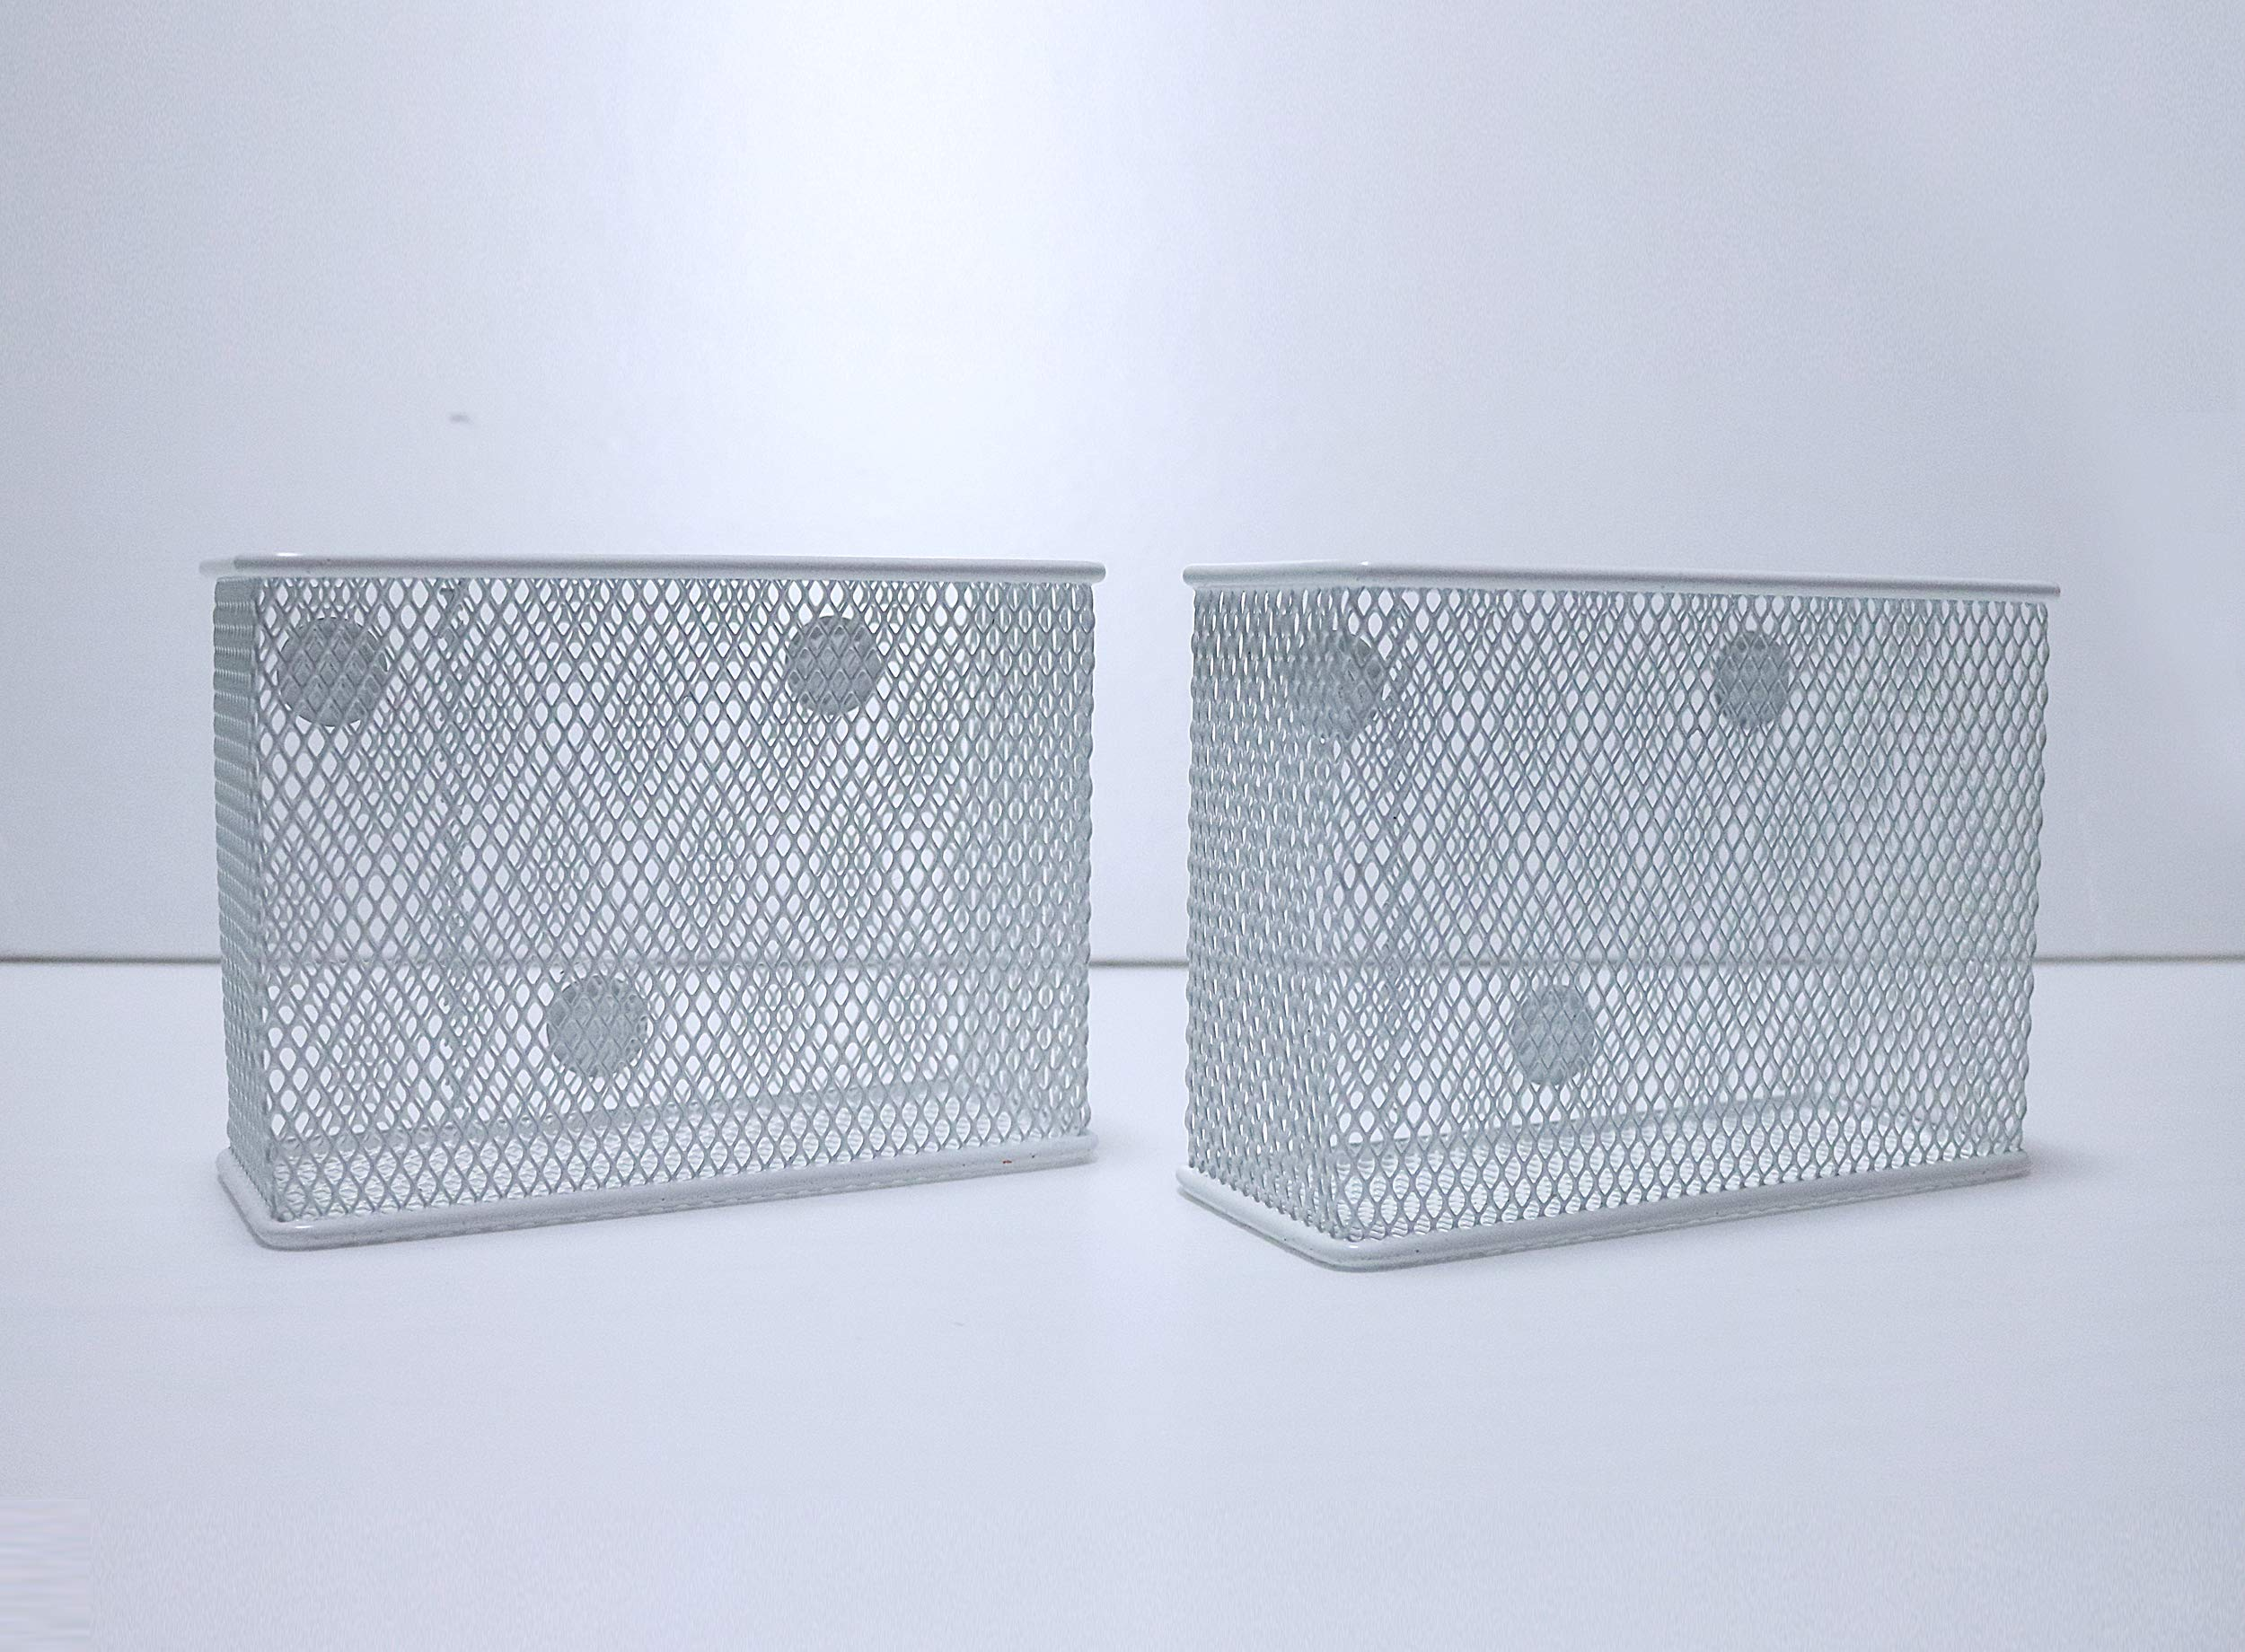 Wire Mesh Magnetic Storage Basket White(Set of 2), Container, Desk Tray, Office Supply Accessory Organizer for Refrigerator/Microwave Oven or Magnetic Surface in Kitchen or Office